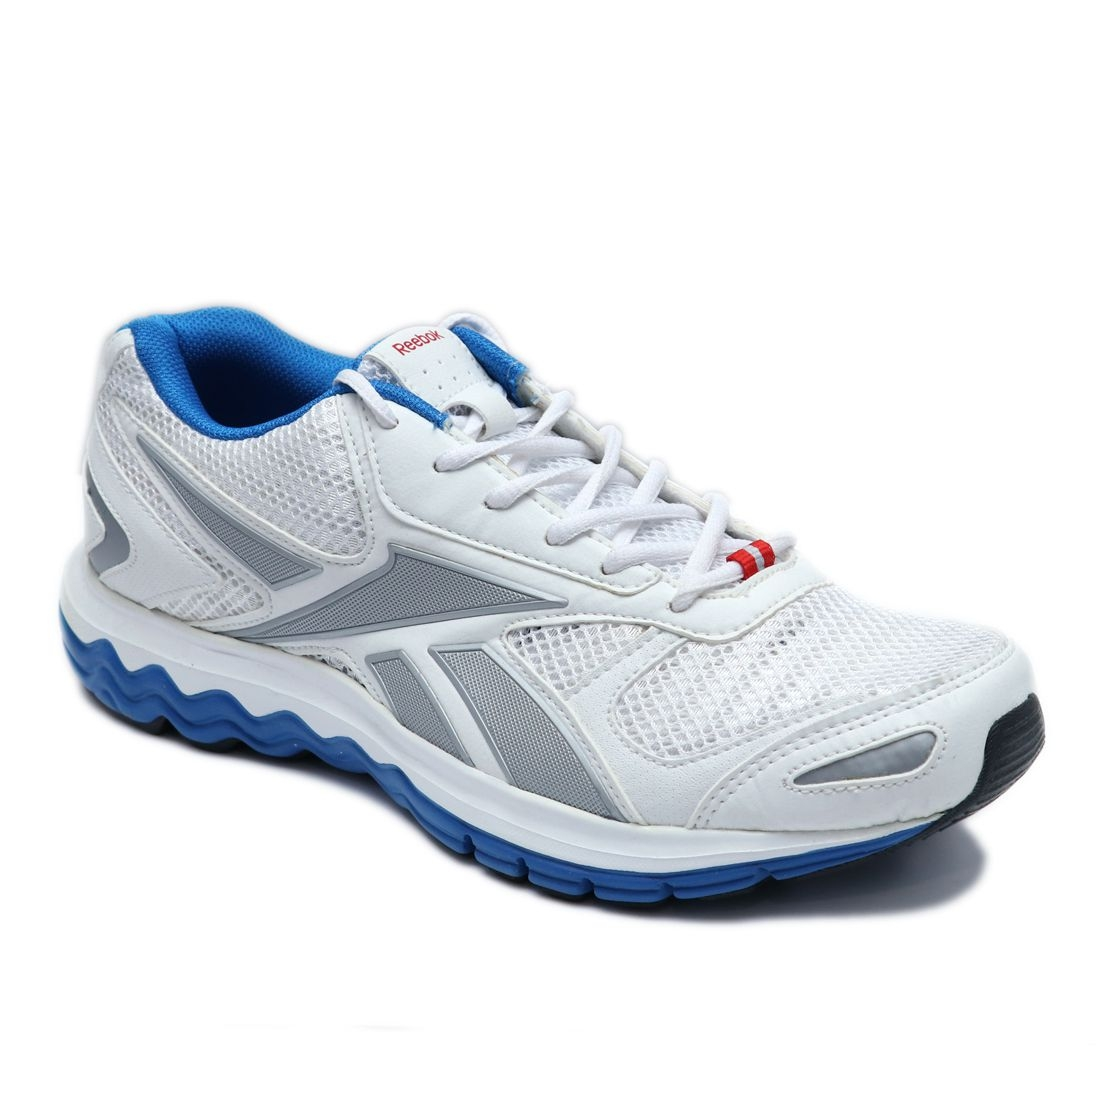 reebok shoes in uk law do i have to have an extractor is used fo